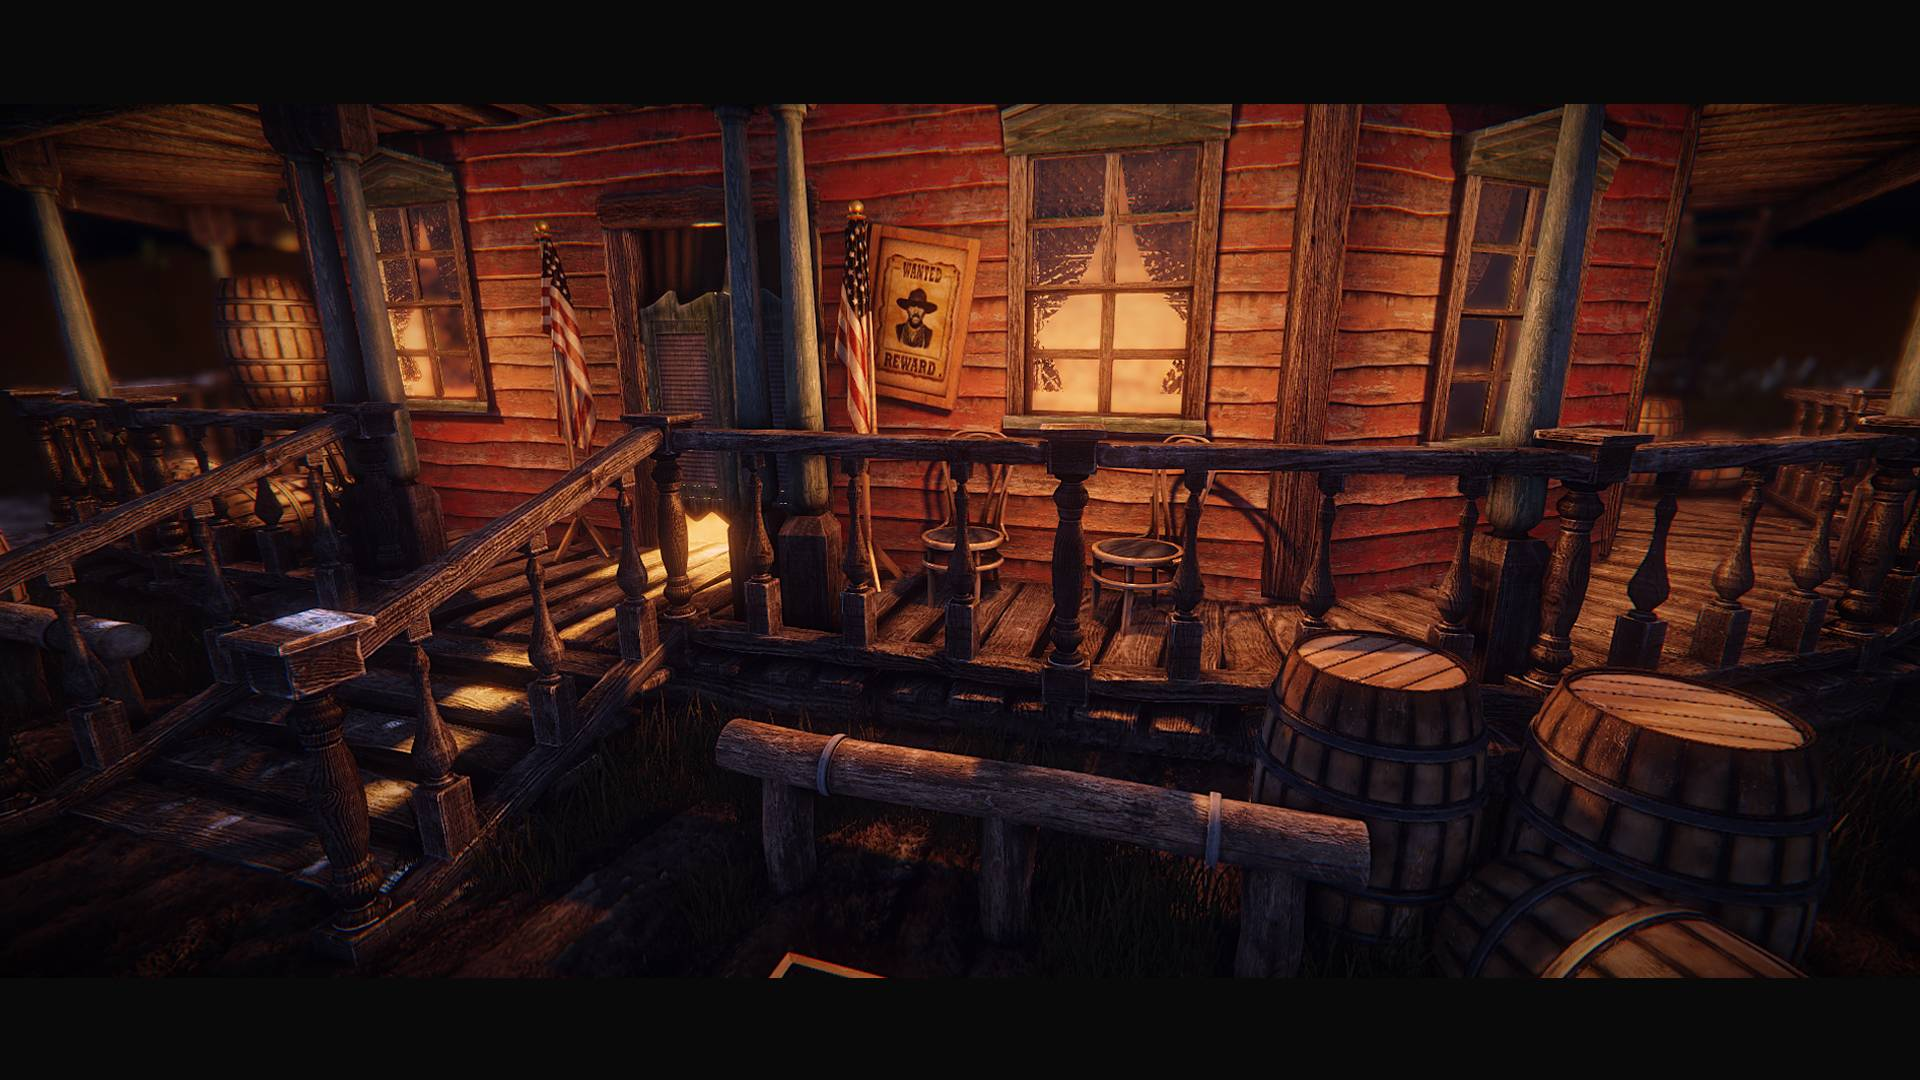 wild west background-#44